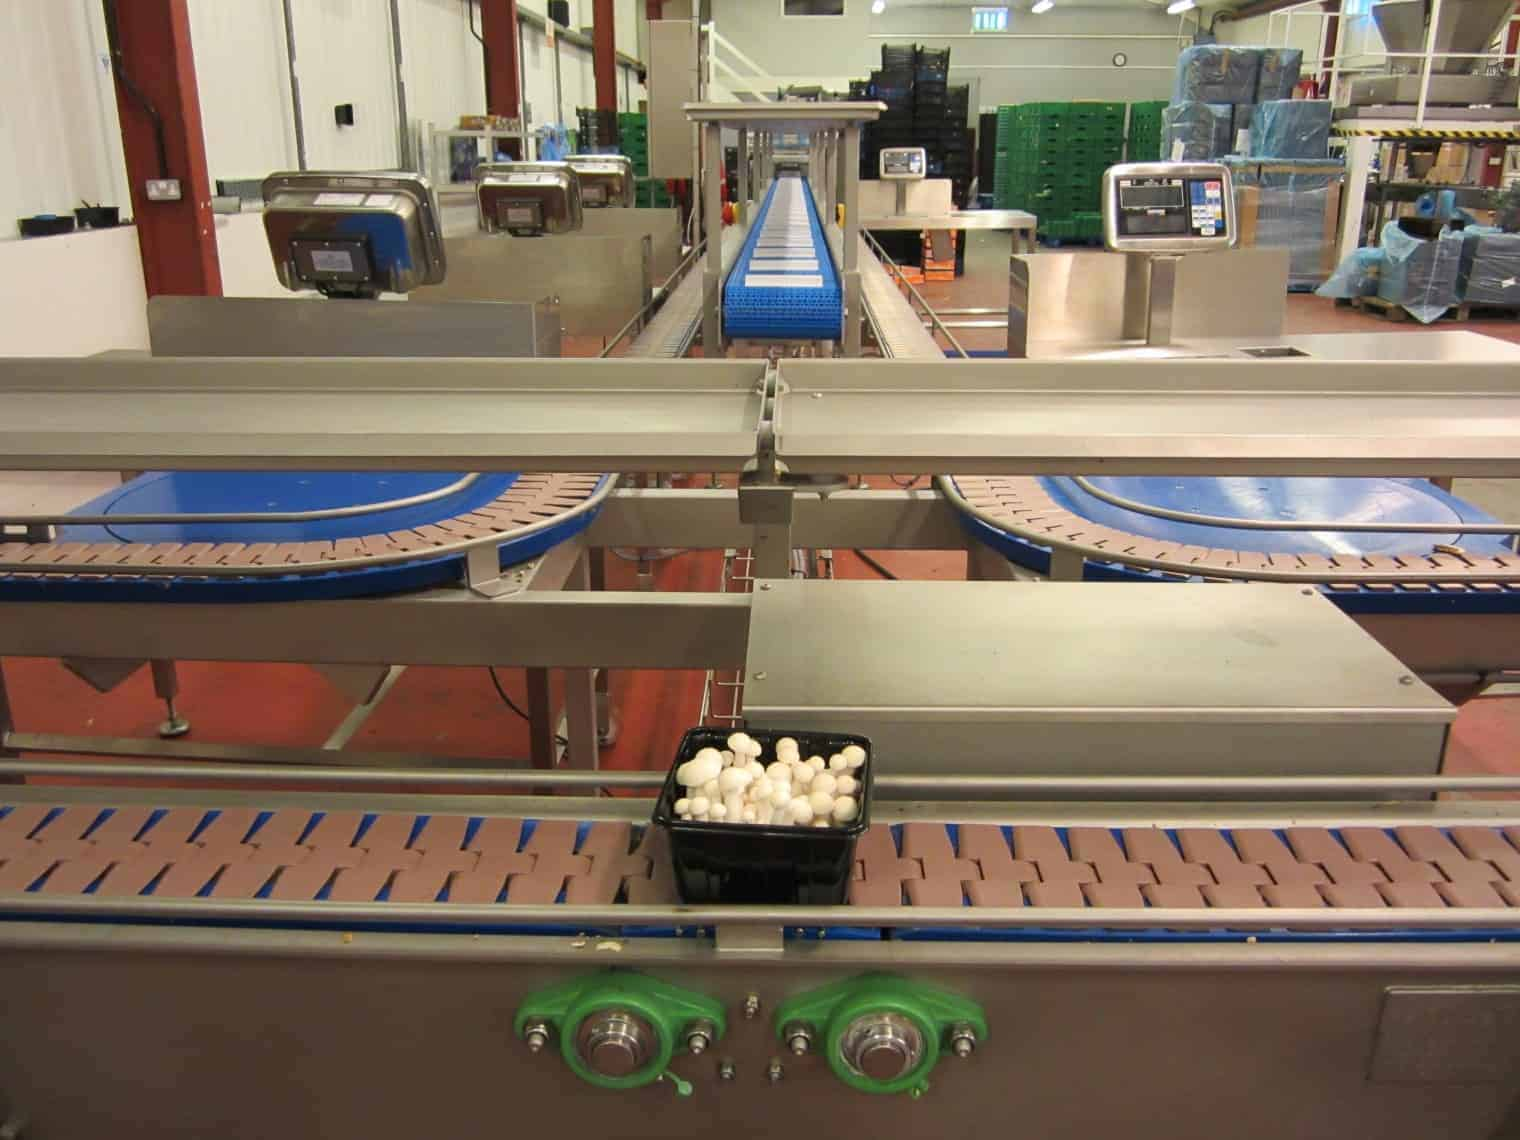 Instalion of food processing Slat Conveyor